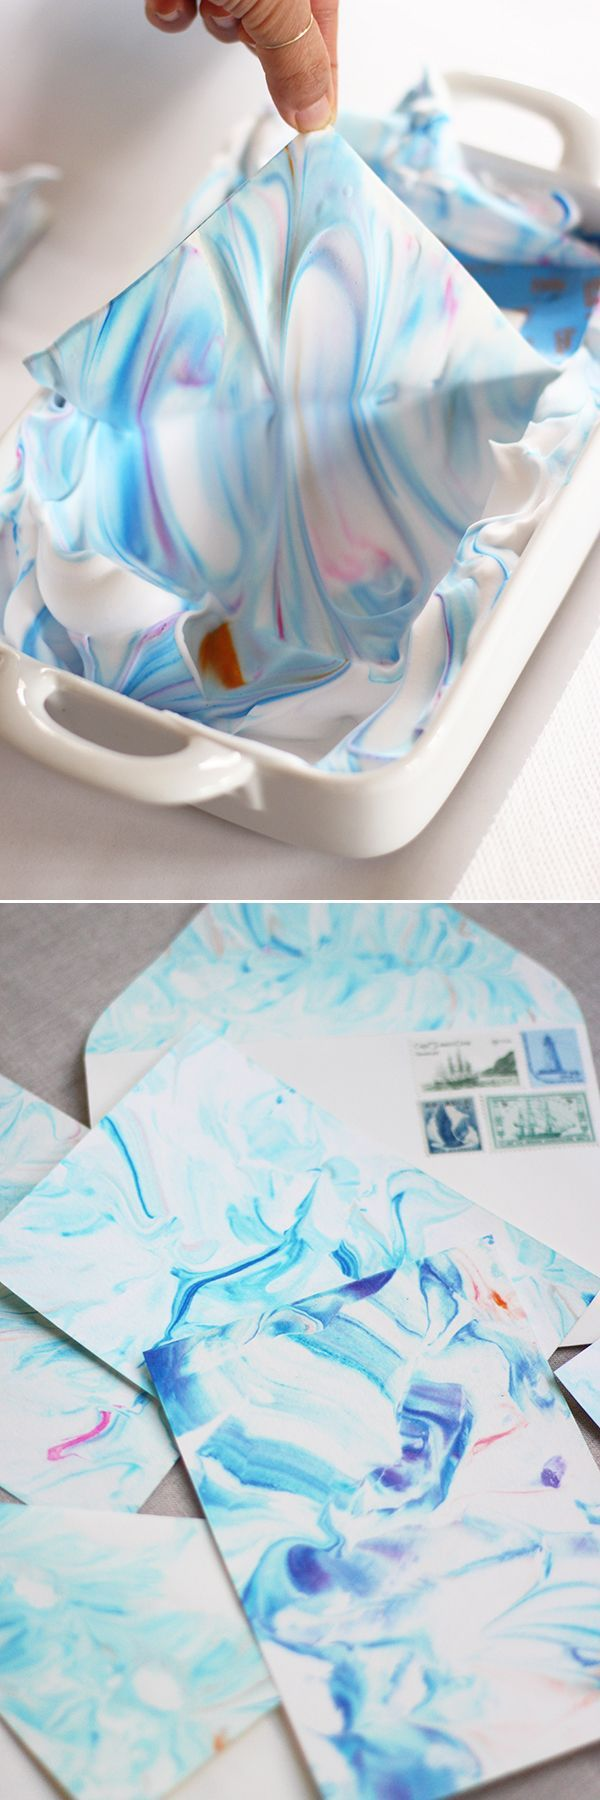 Marbling with shaving cream and food dye. It would be cute to make a #DIY envelope